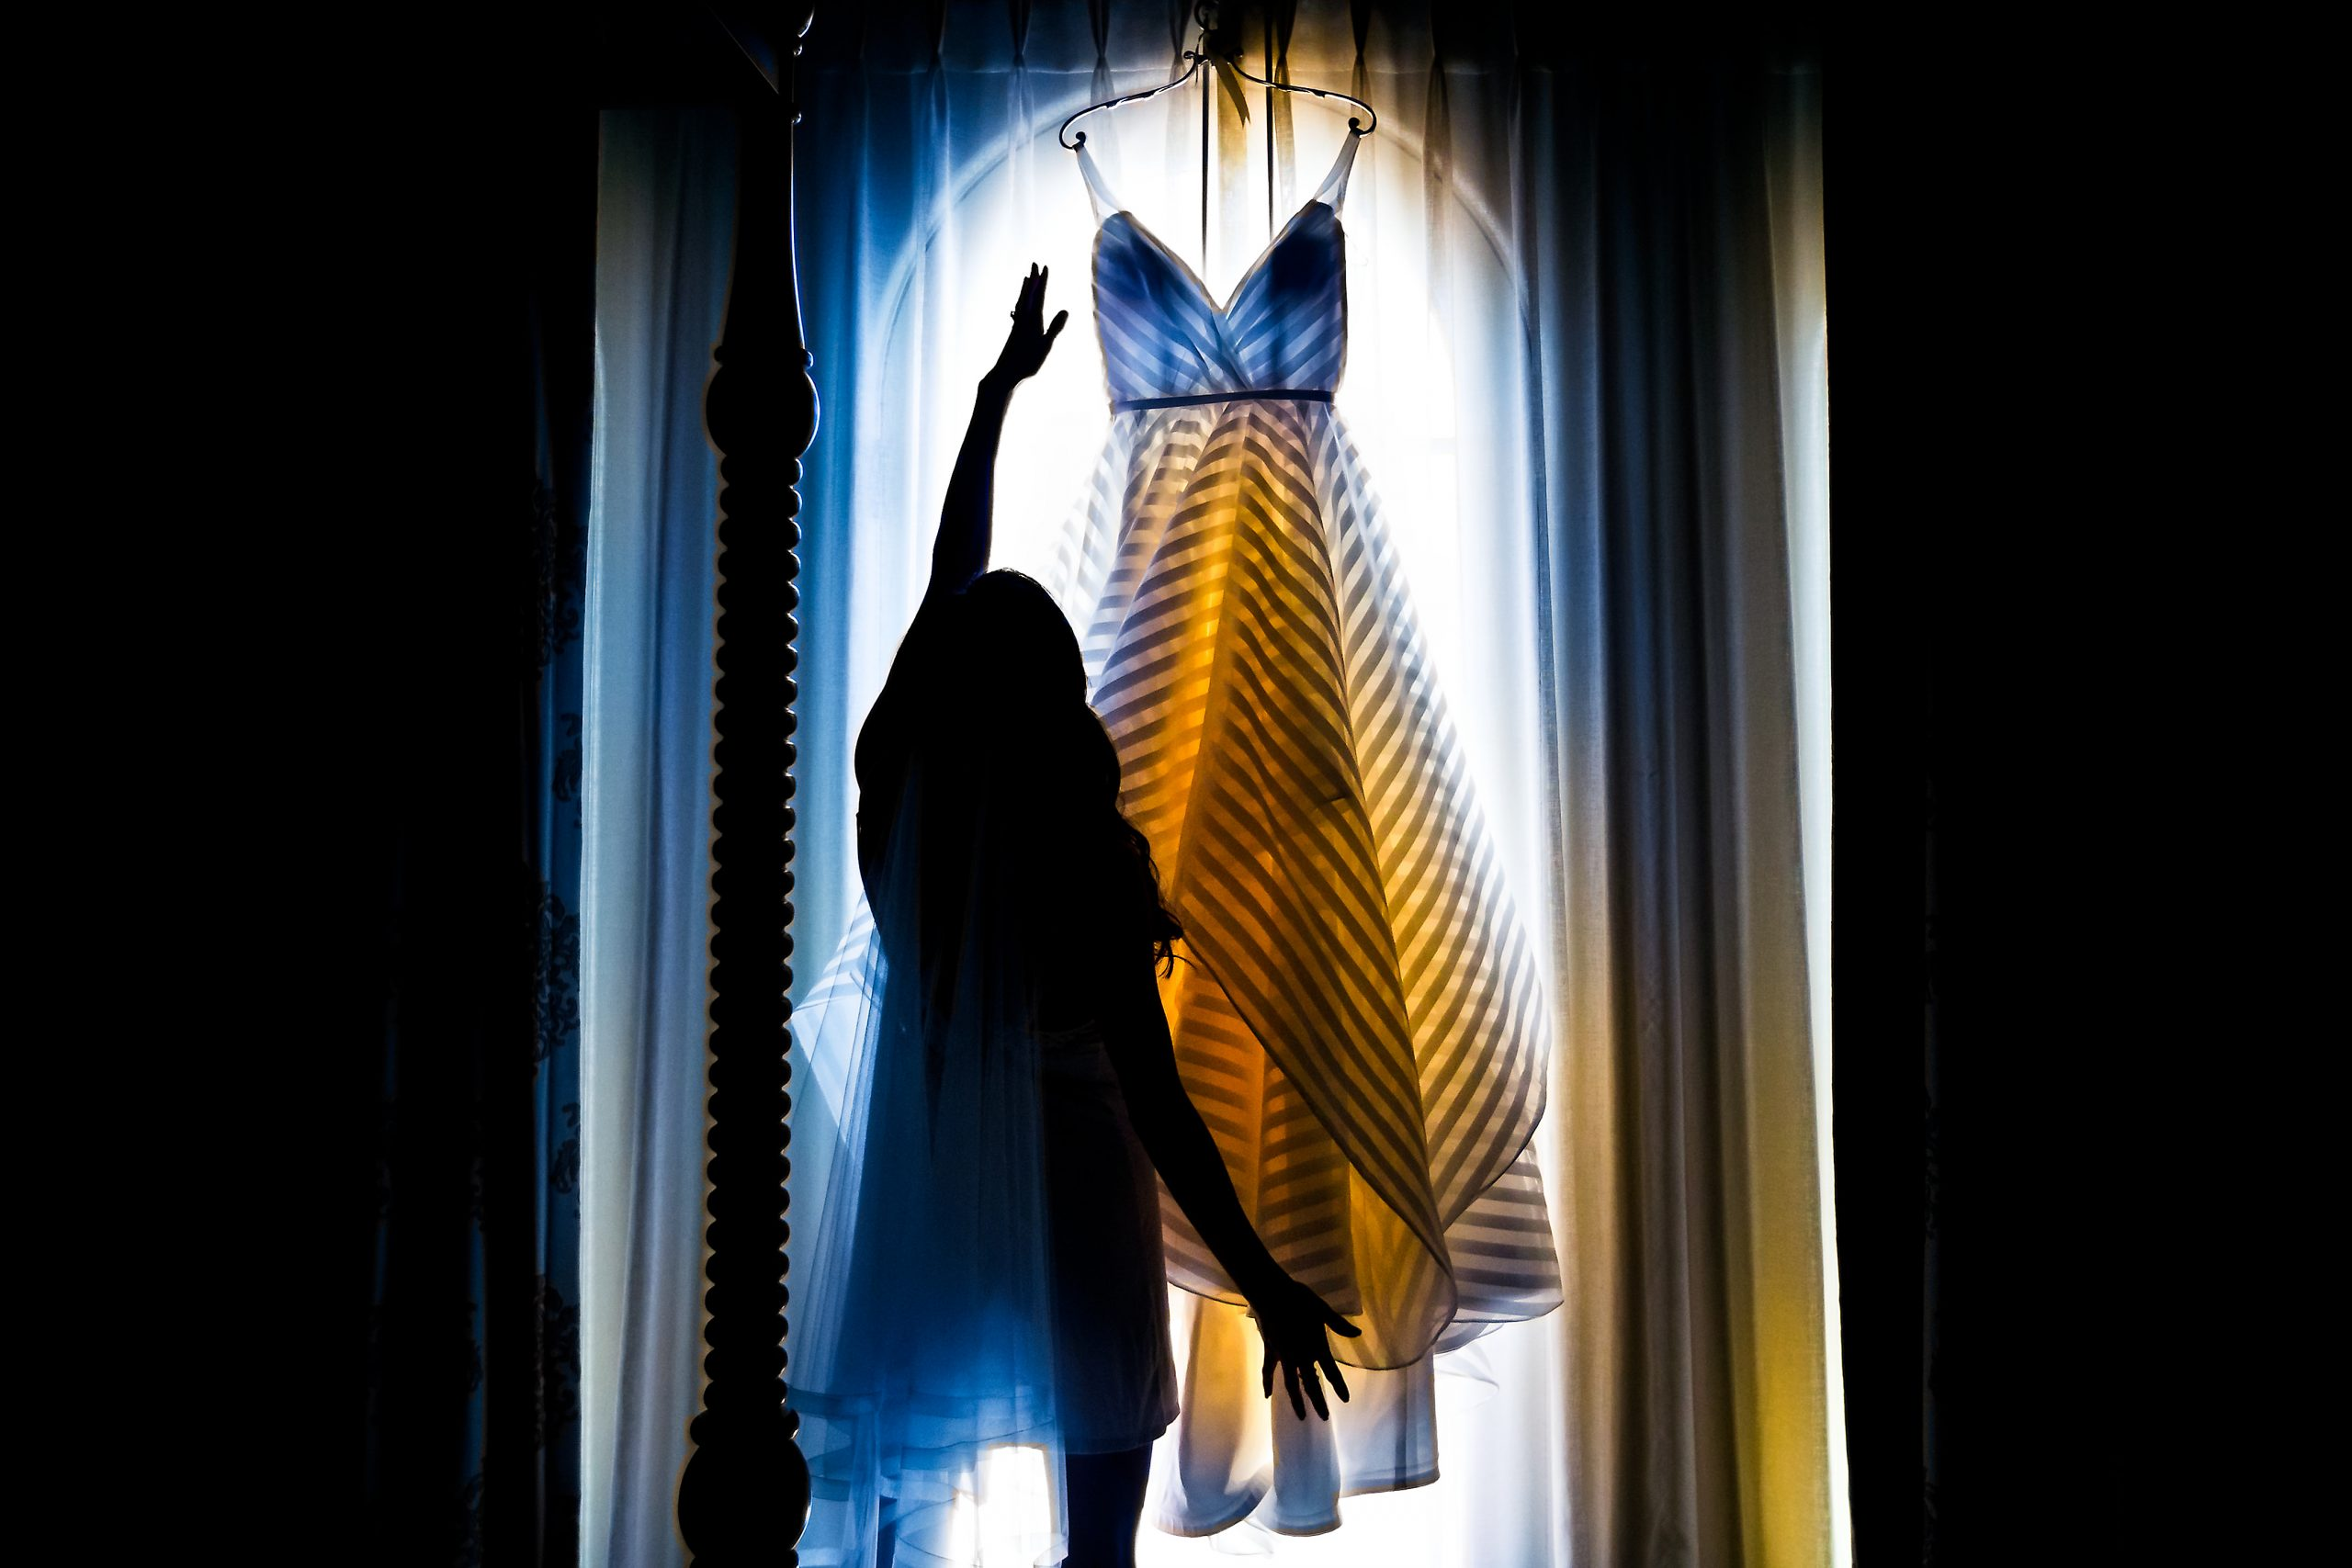 Woman inspects wedding dress hanging in front of a bright window